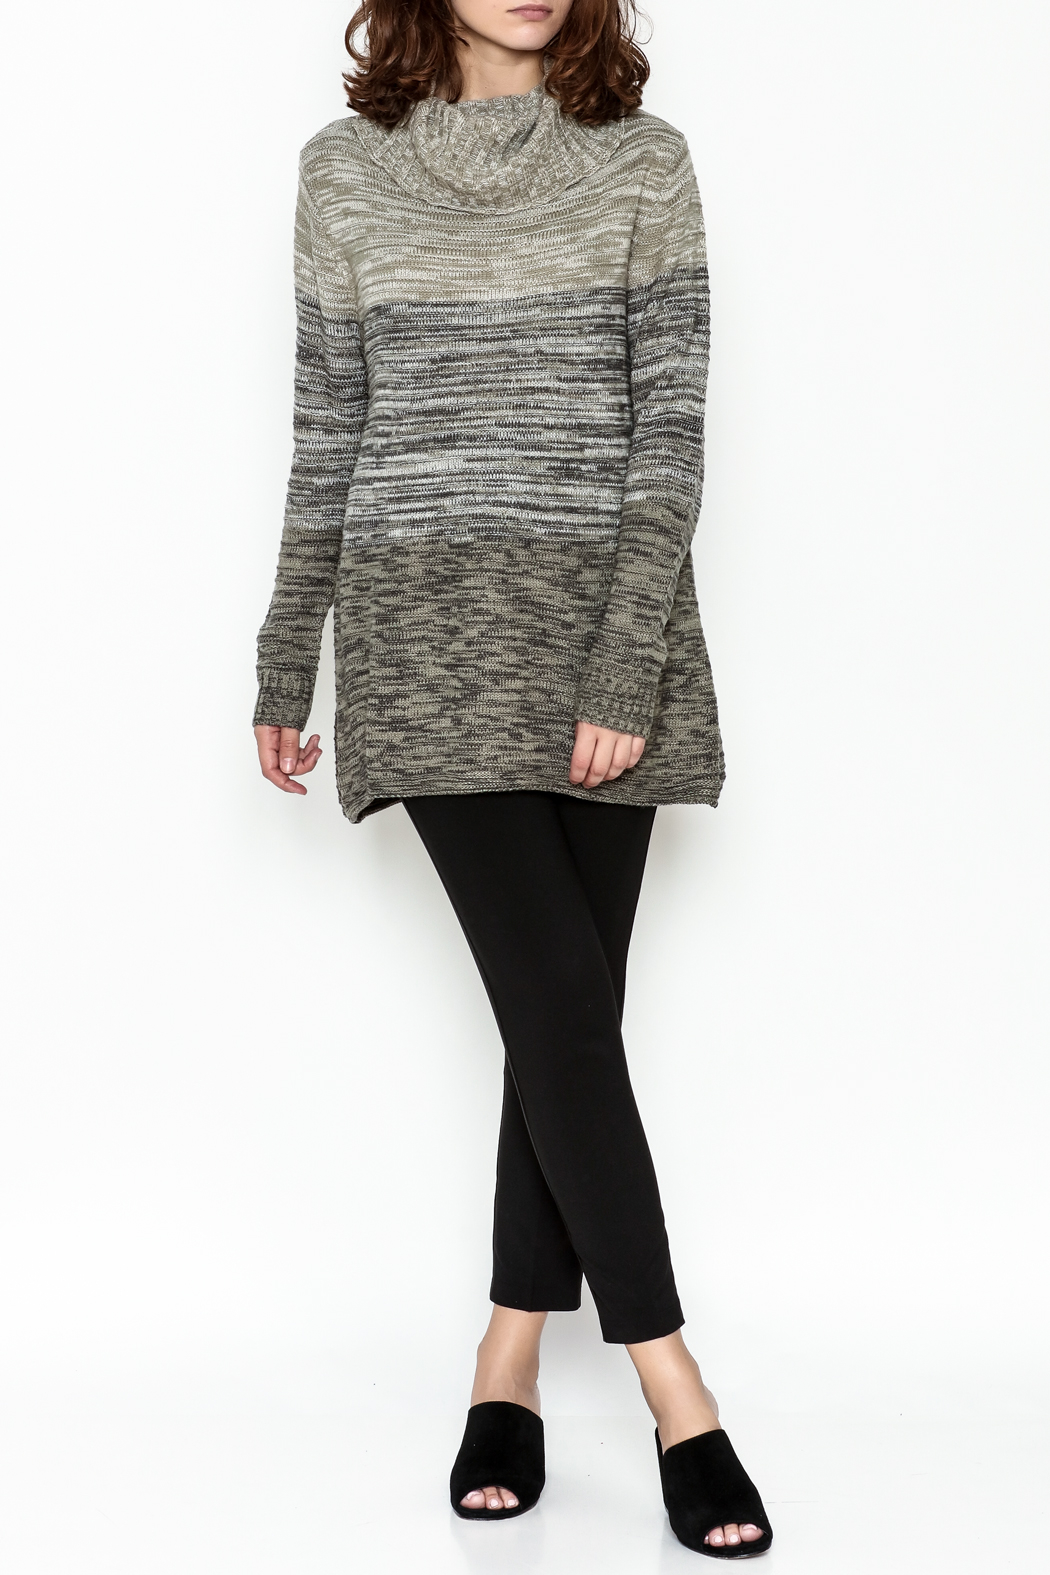 Keren Hart Variegated Cowl Neck Sweater - Side Cropped Image